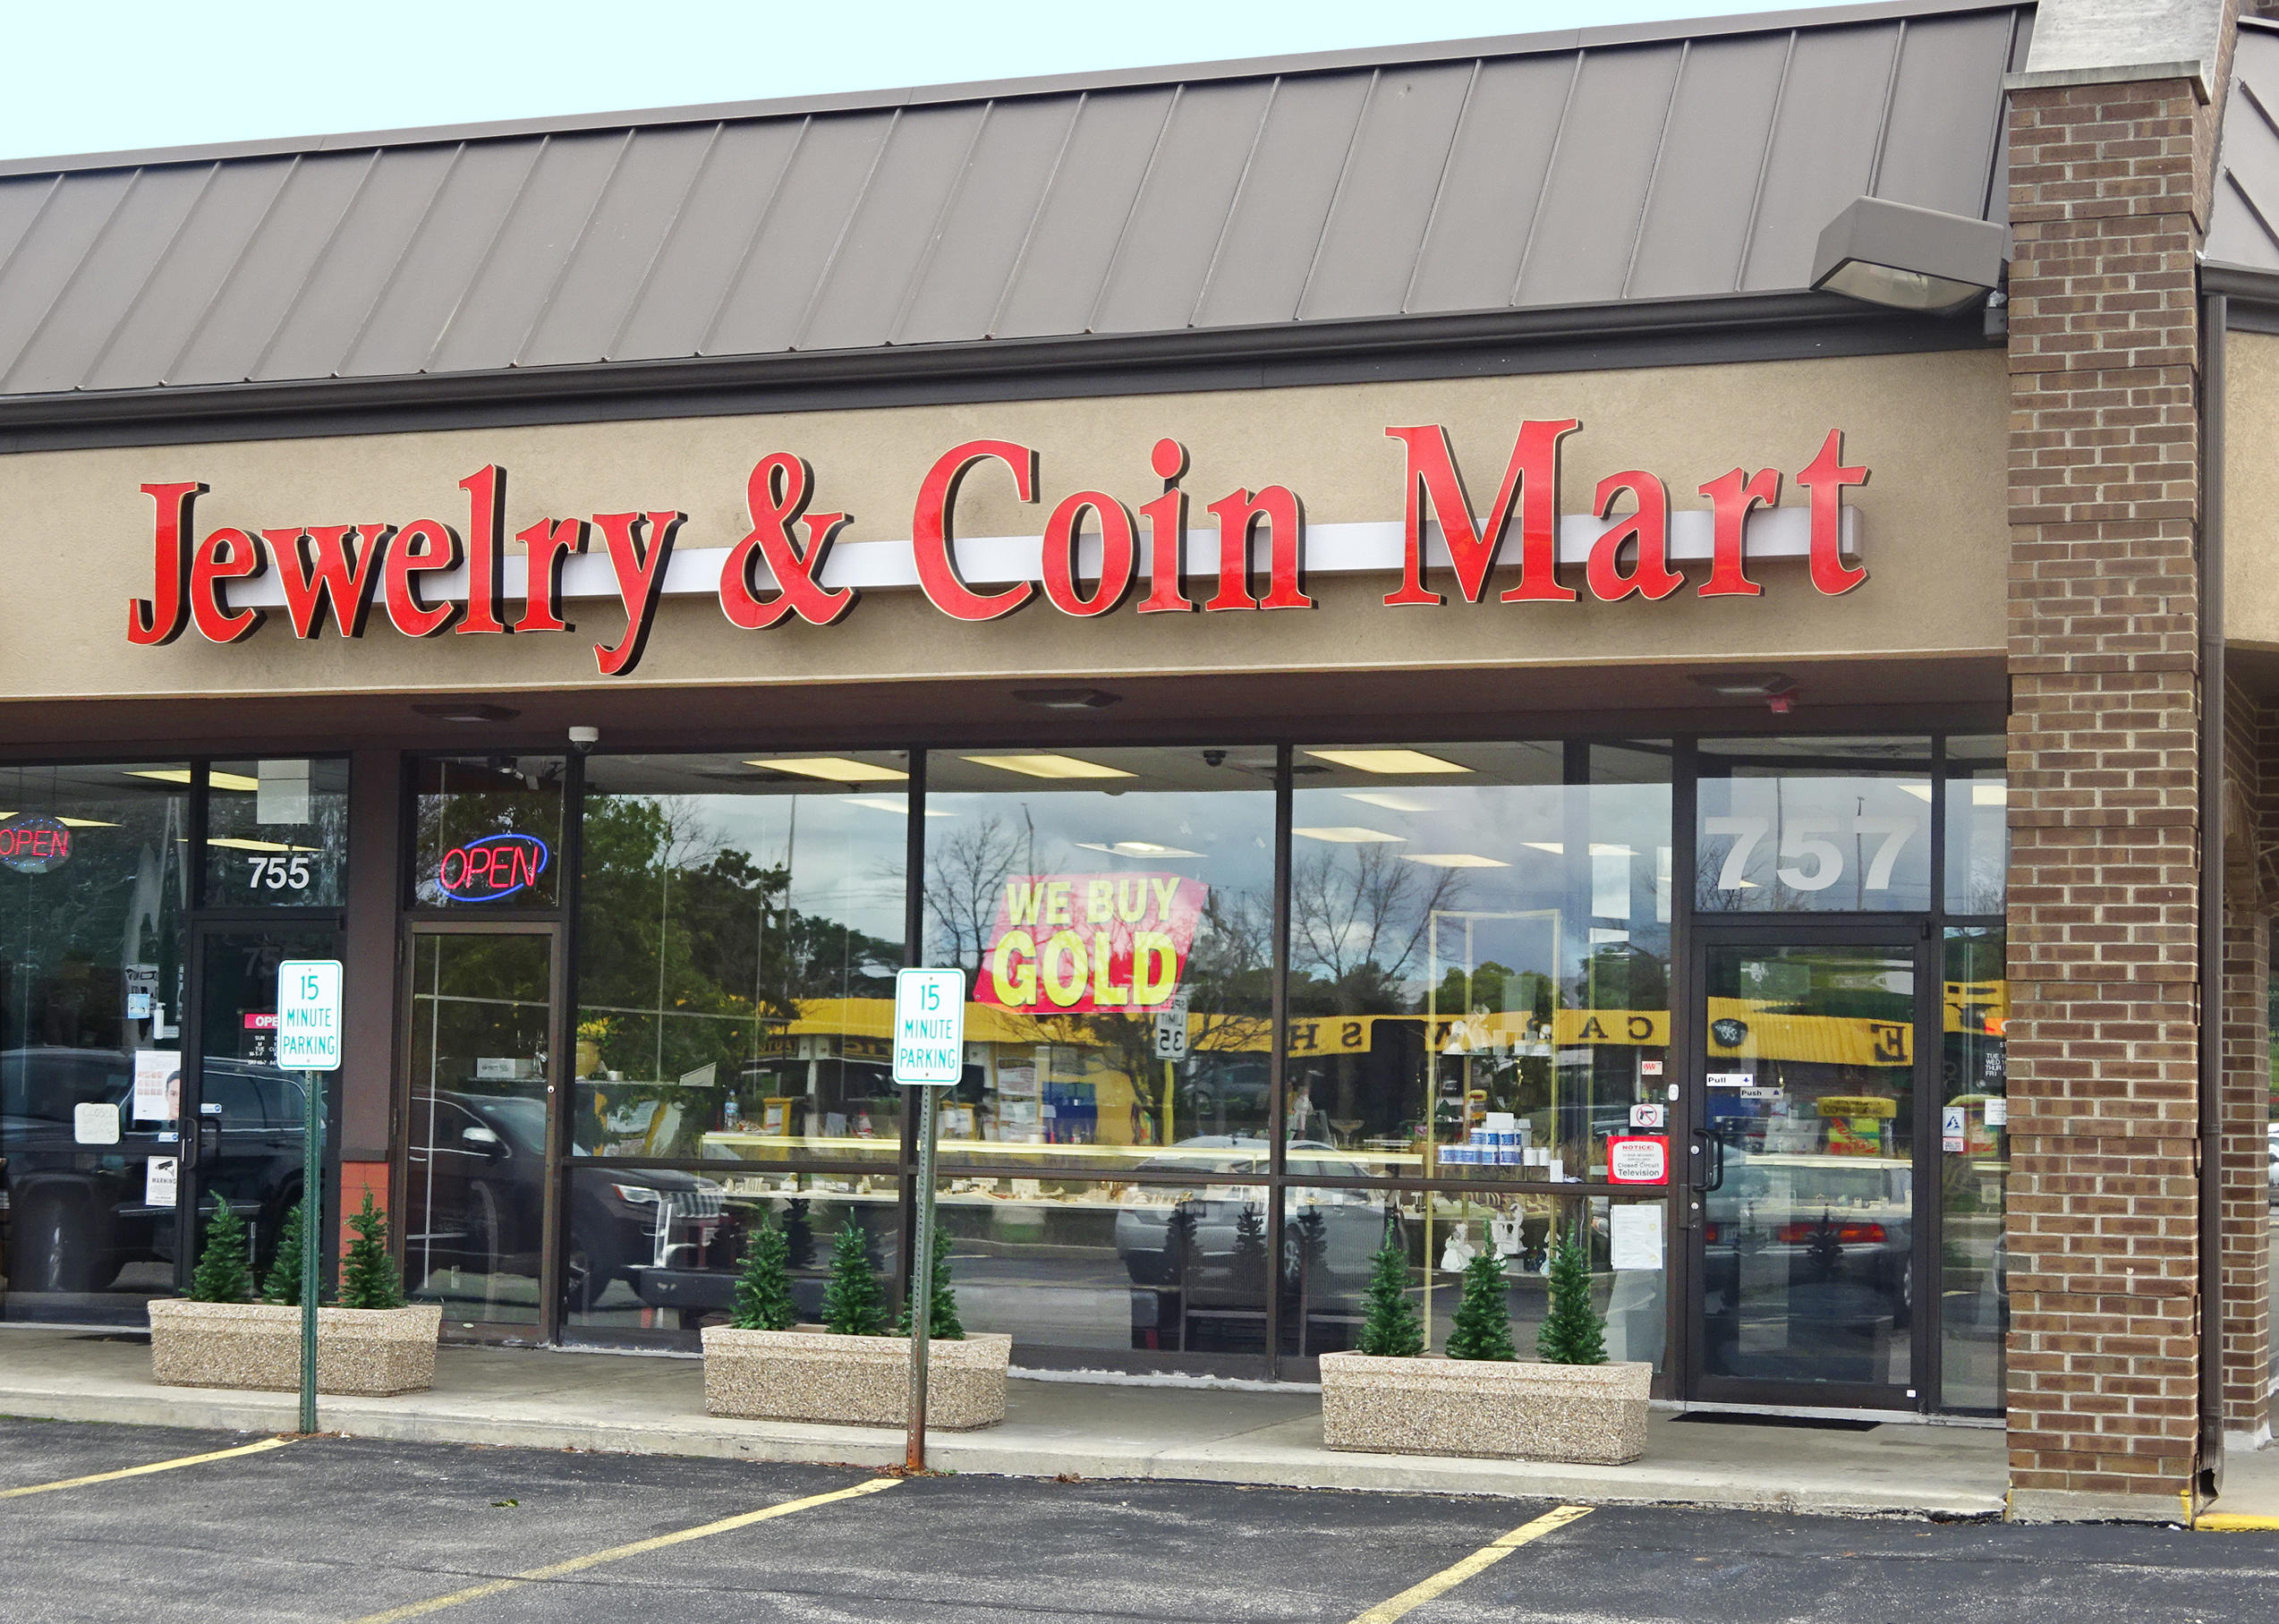 Jewelry coin mart coupons near me in schaumburg 8coupons for Local jewelry stores near me